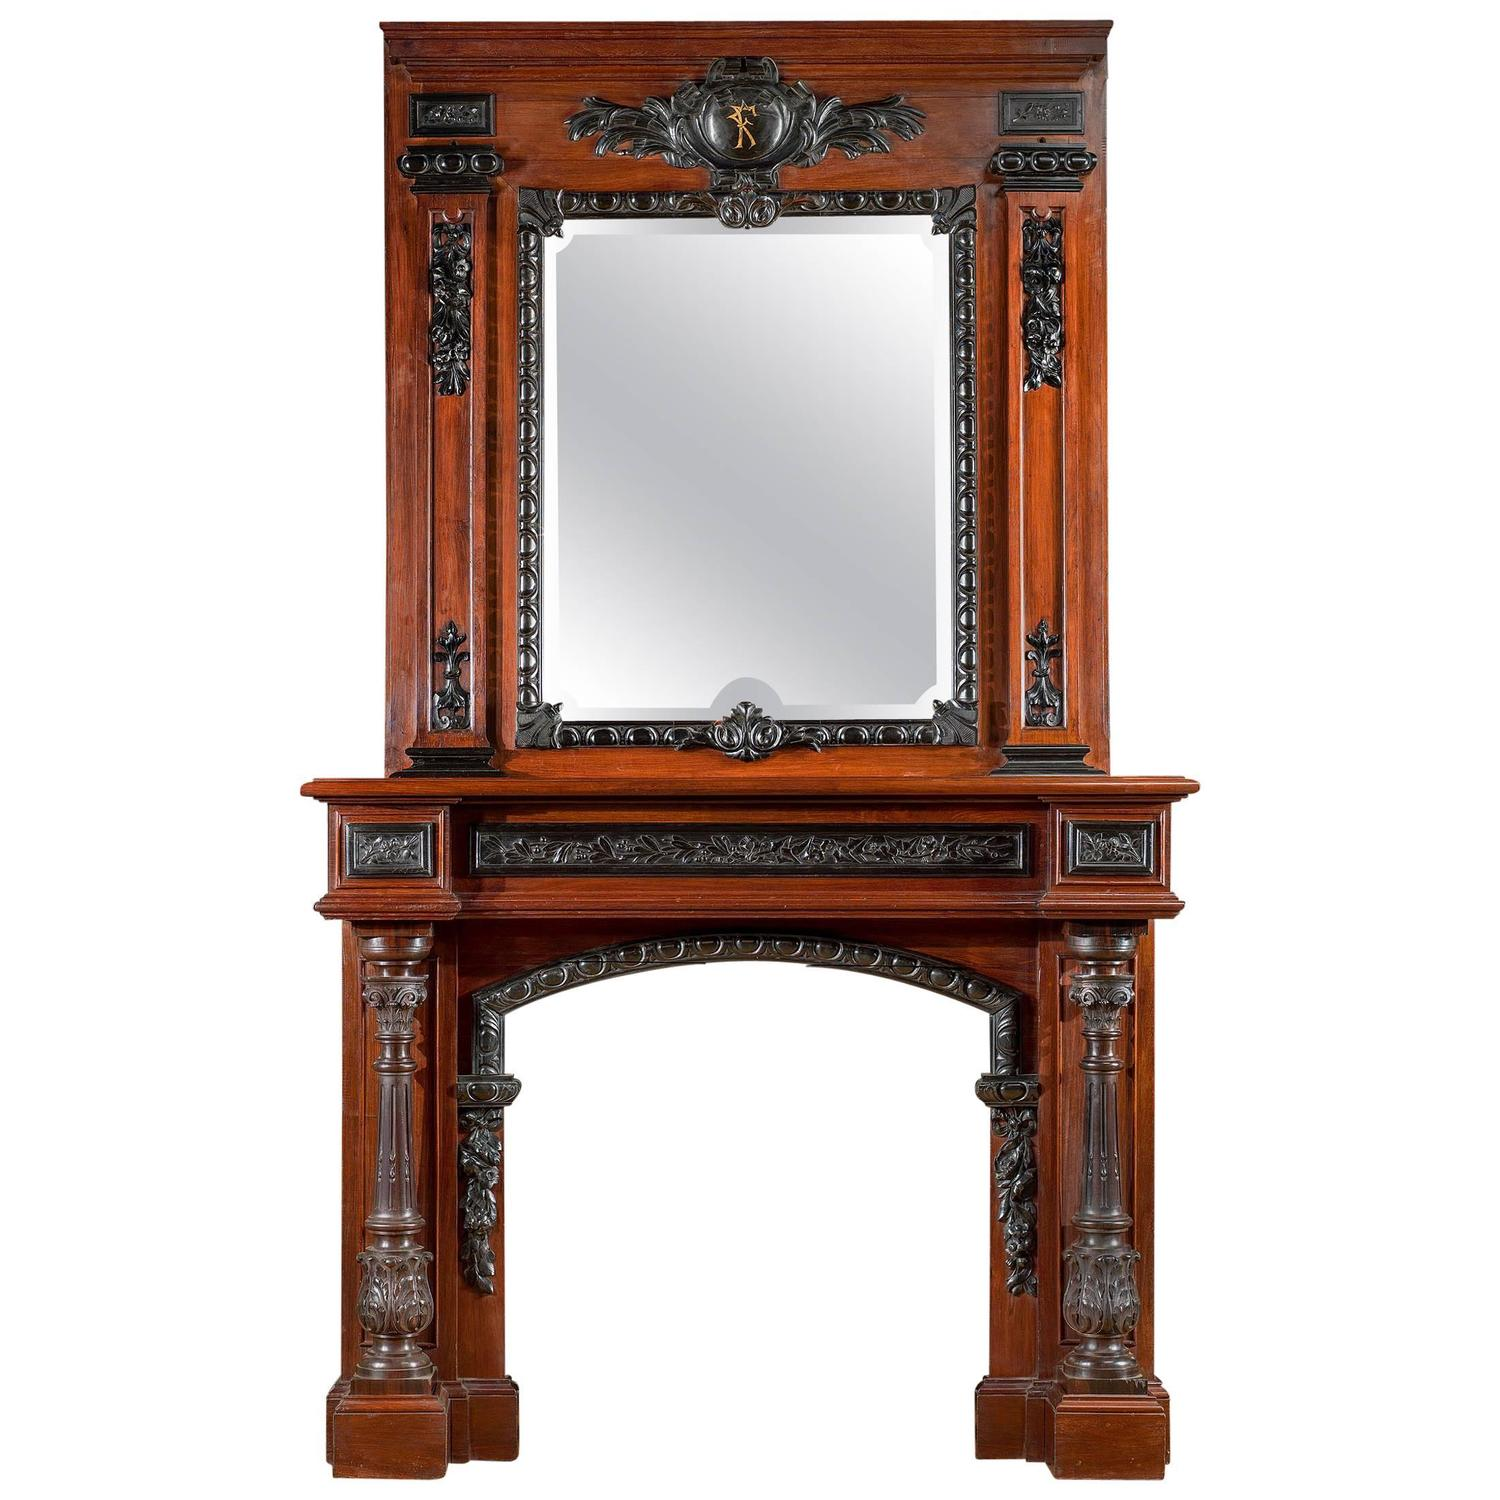 French baroque furniture - Rosewood And Ebony Antique Fireplace Mantel In The French Baroque Manner For Sale At 1stdibs